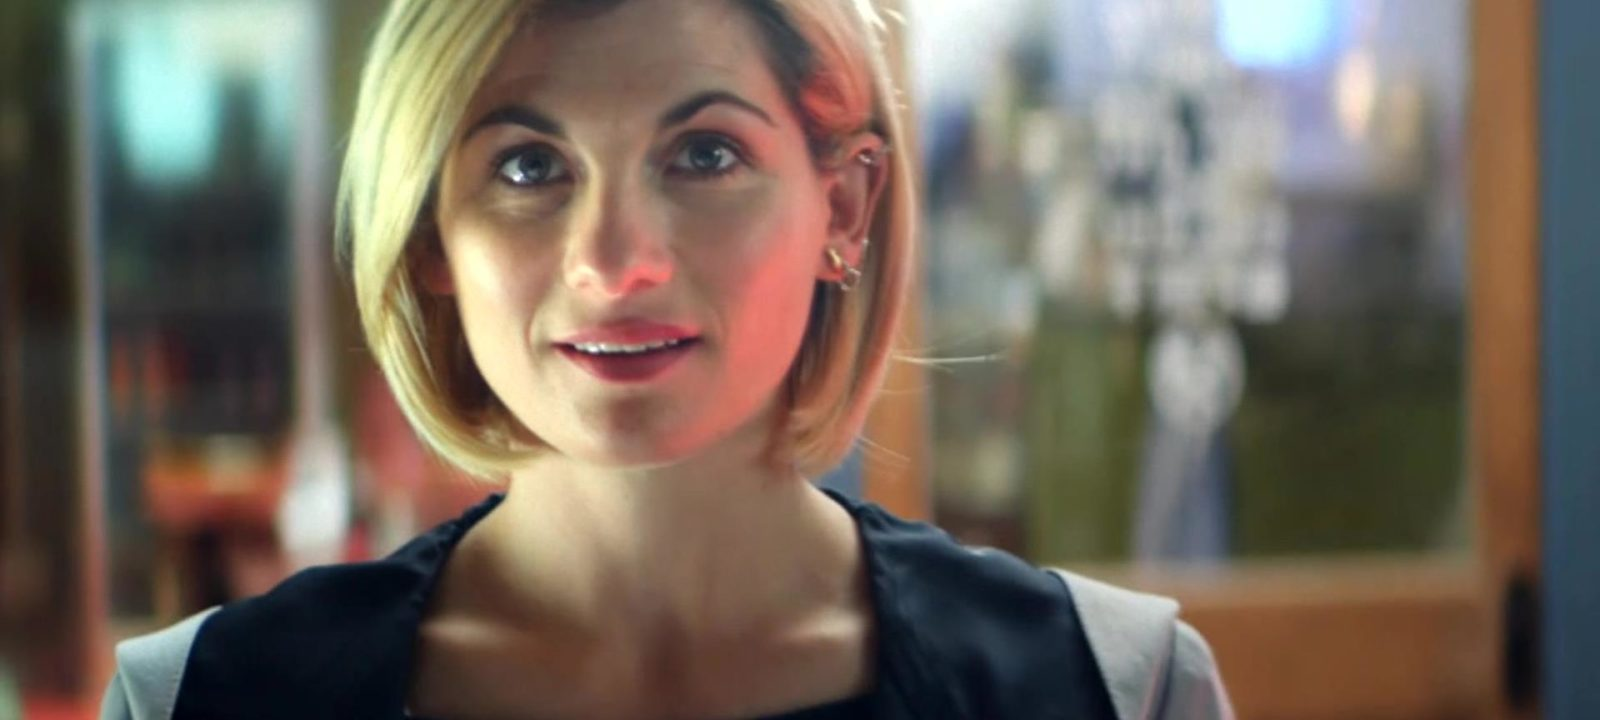 Doctor_Who_S11_UK_World_Cup_Promo_for_Social_YouTubePreset_KE10_1920x1080_1277366851917